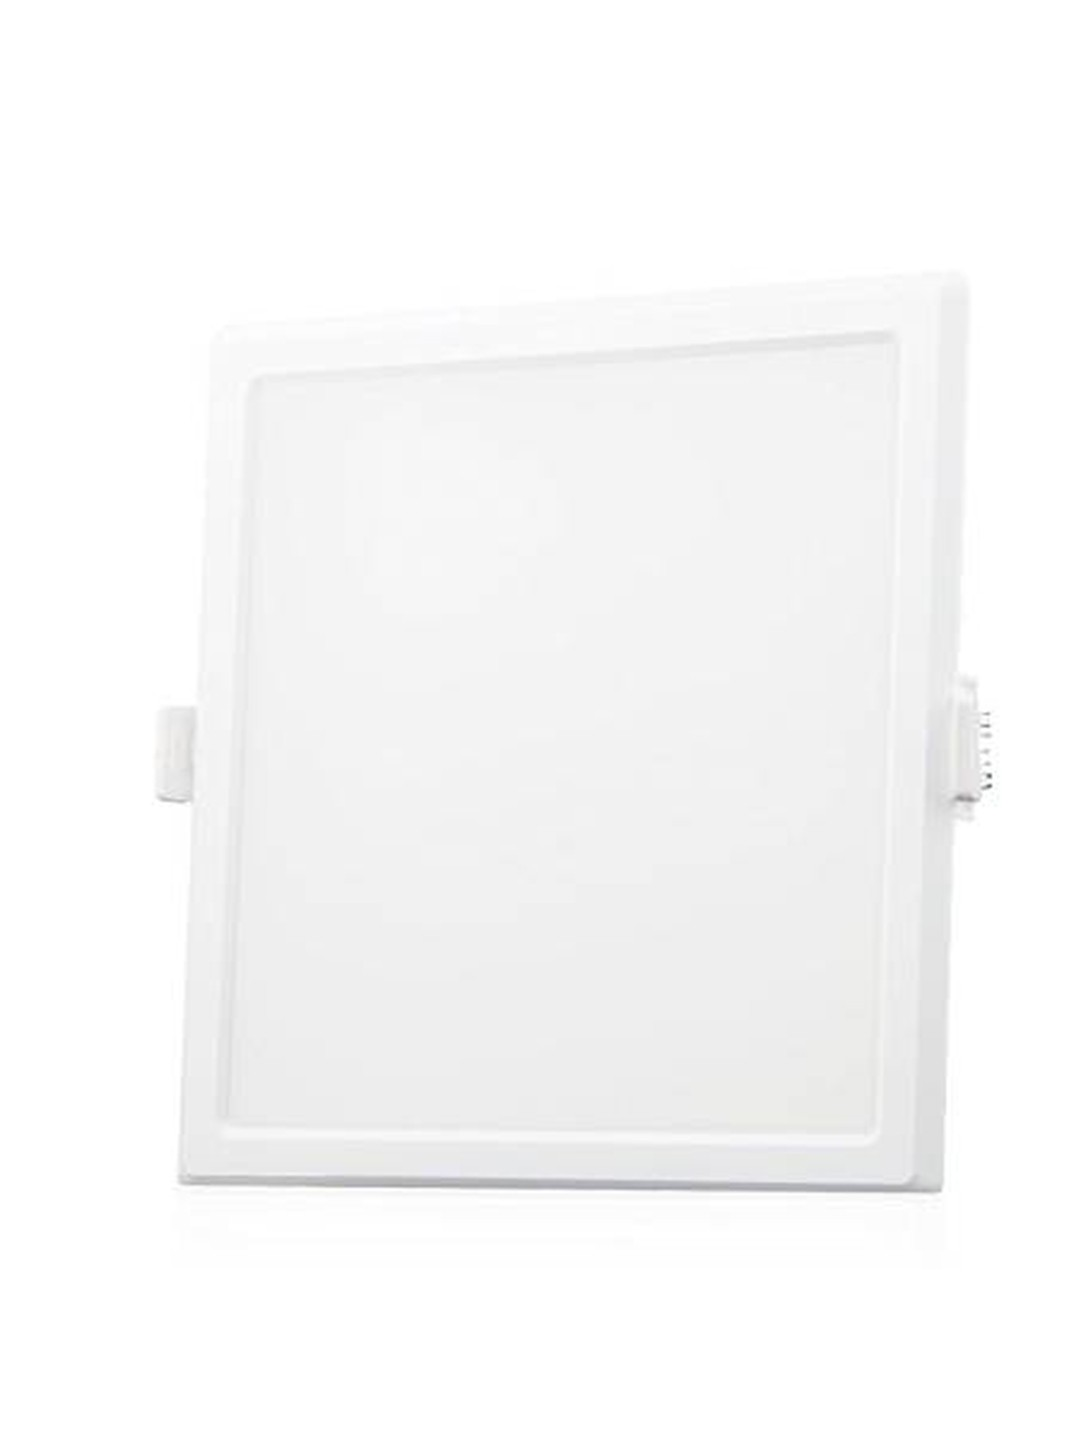 Syska RDL 5 Watt Square LED Recessed Panel Light (Warm White)